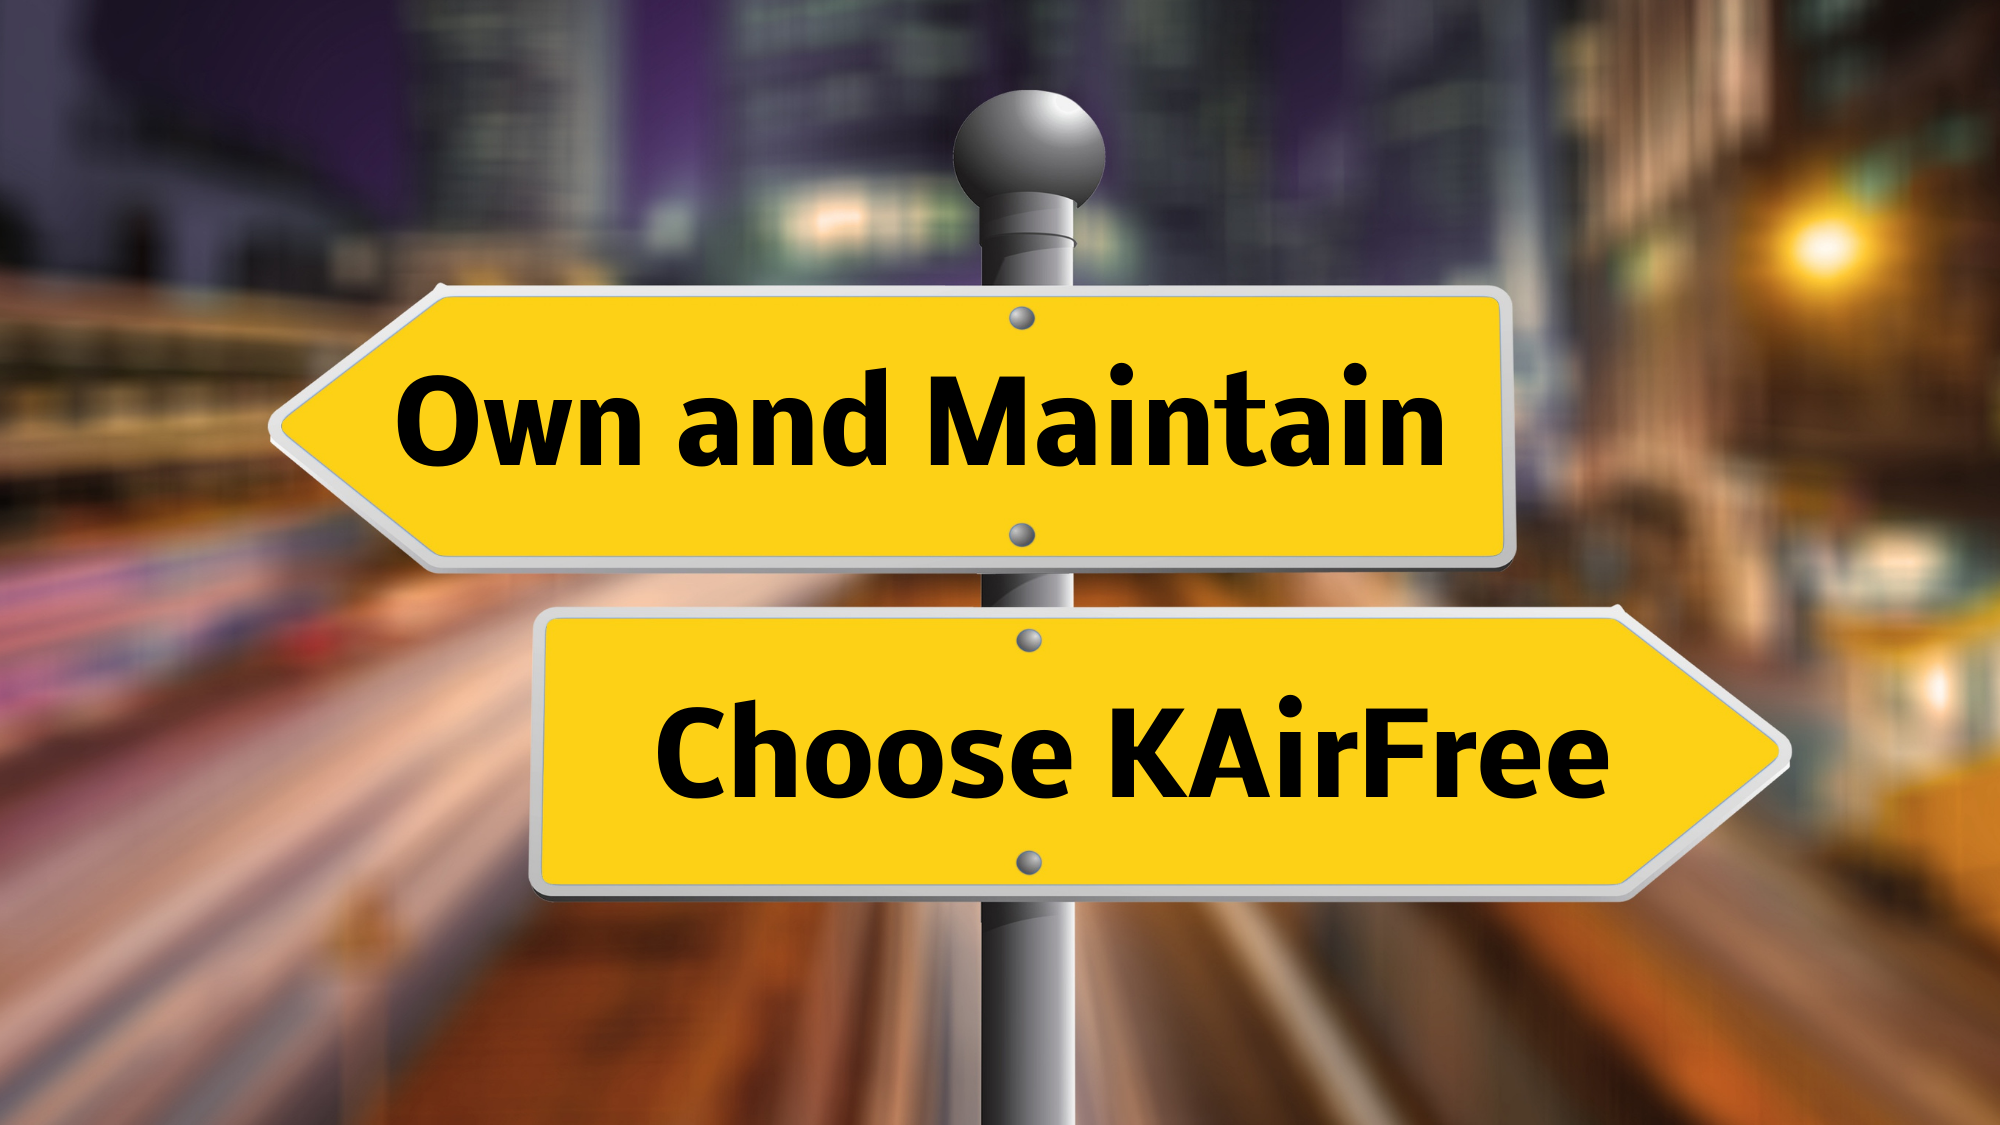 Is KAirFree right for me?